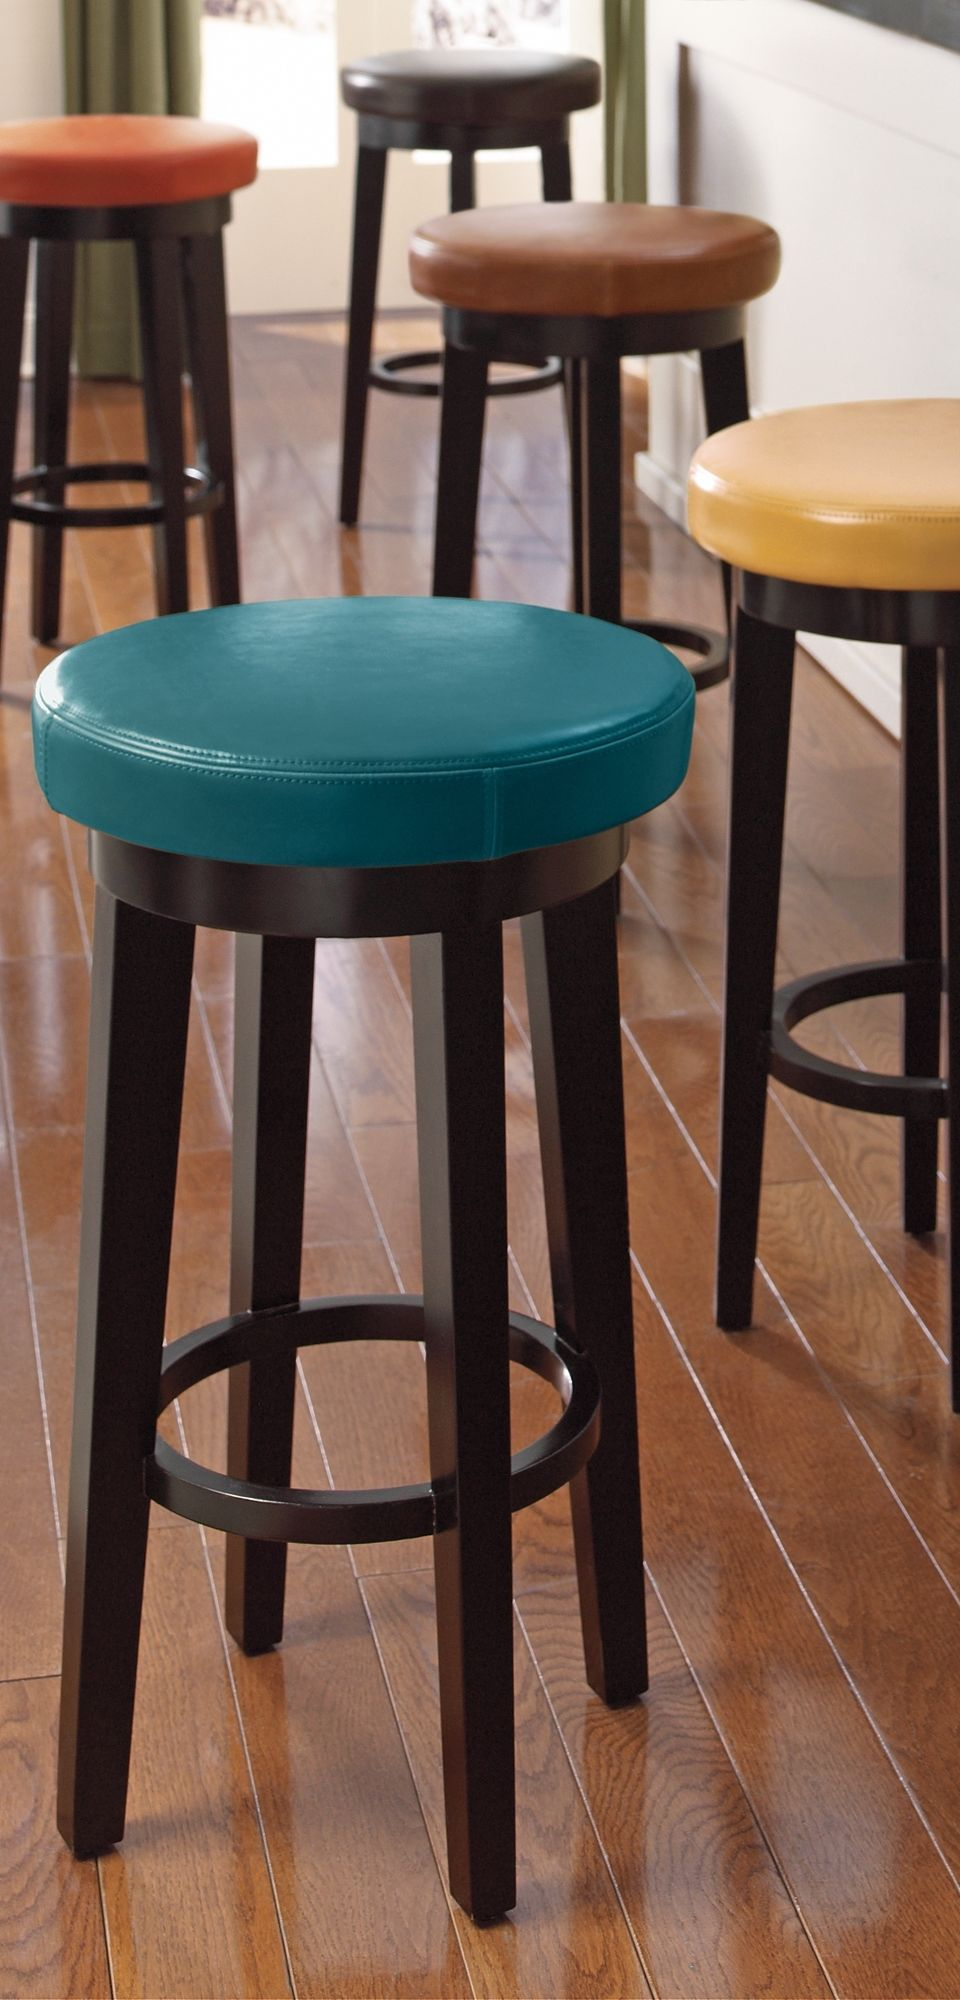 Dublin Swivel Bar Counter Stool Grandin Road Bar Chairs Swivel Bar Stools Bar Stools